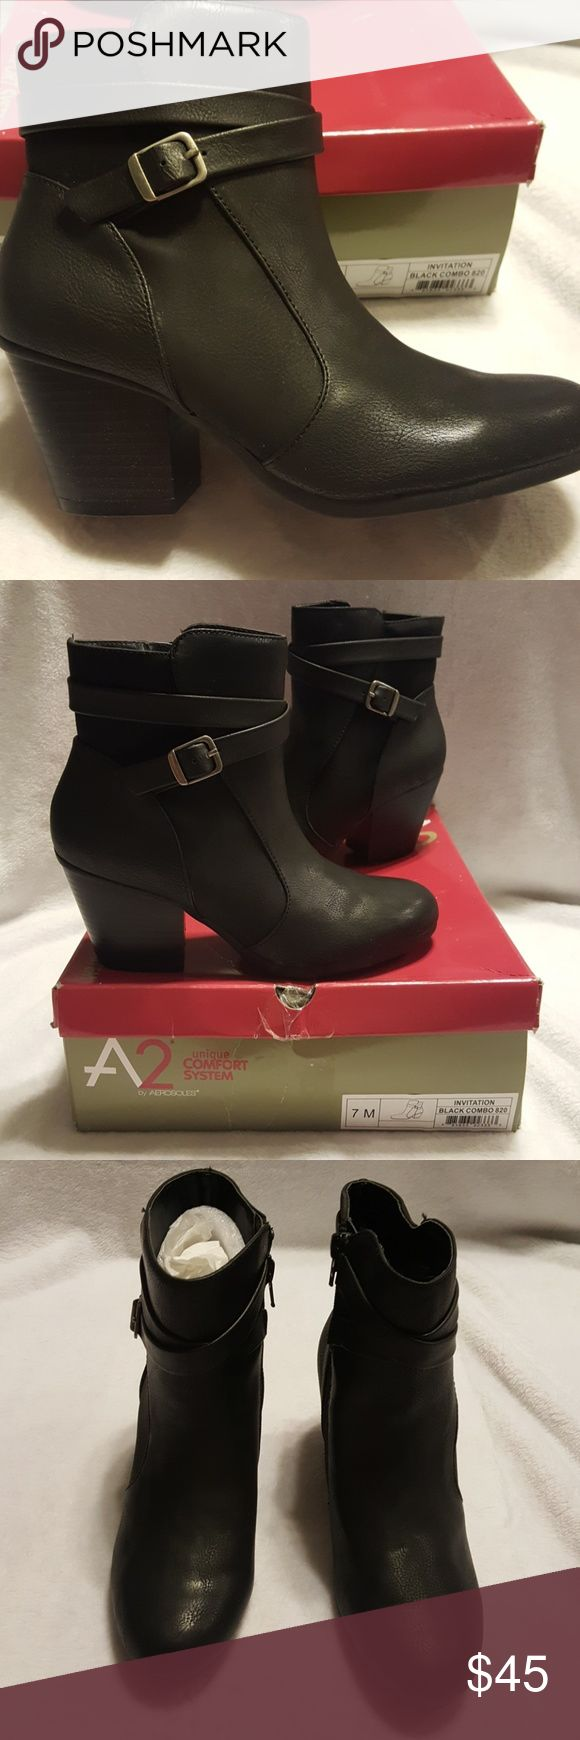 A2 Aerosoles 7M invitation black combo 820 NWT 3 inch heel,  very stylish with silver buckle. AEROSOLES Shoes Ankle Boots & Booties